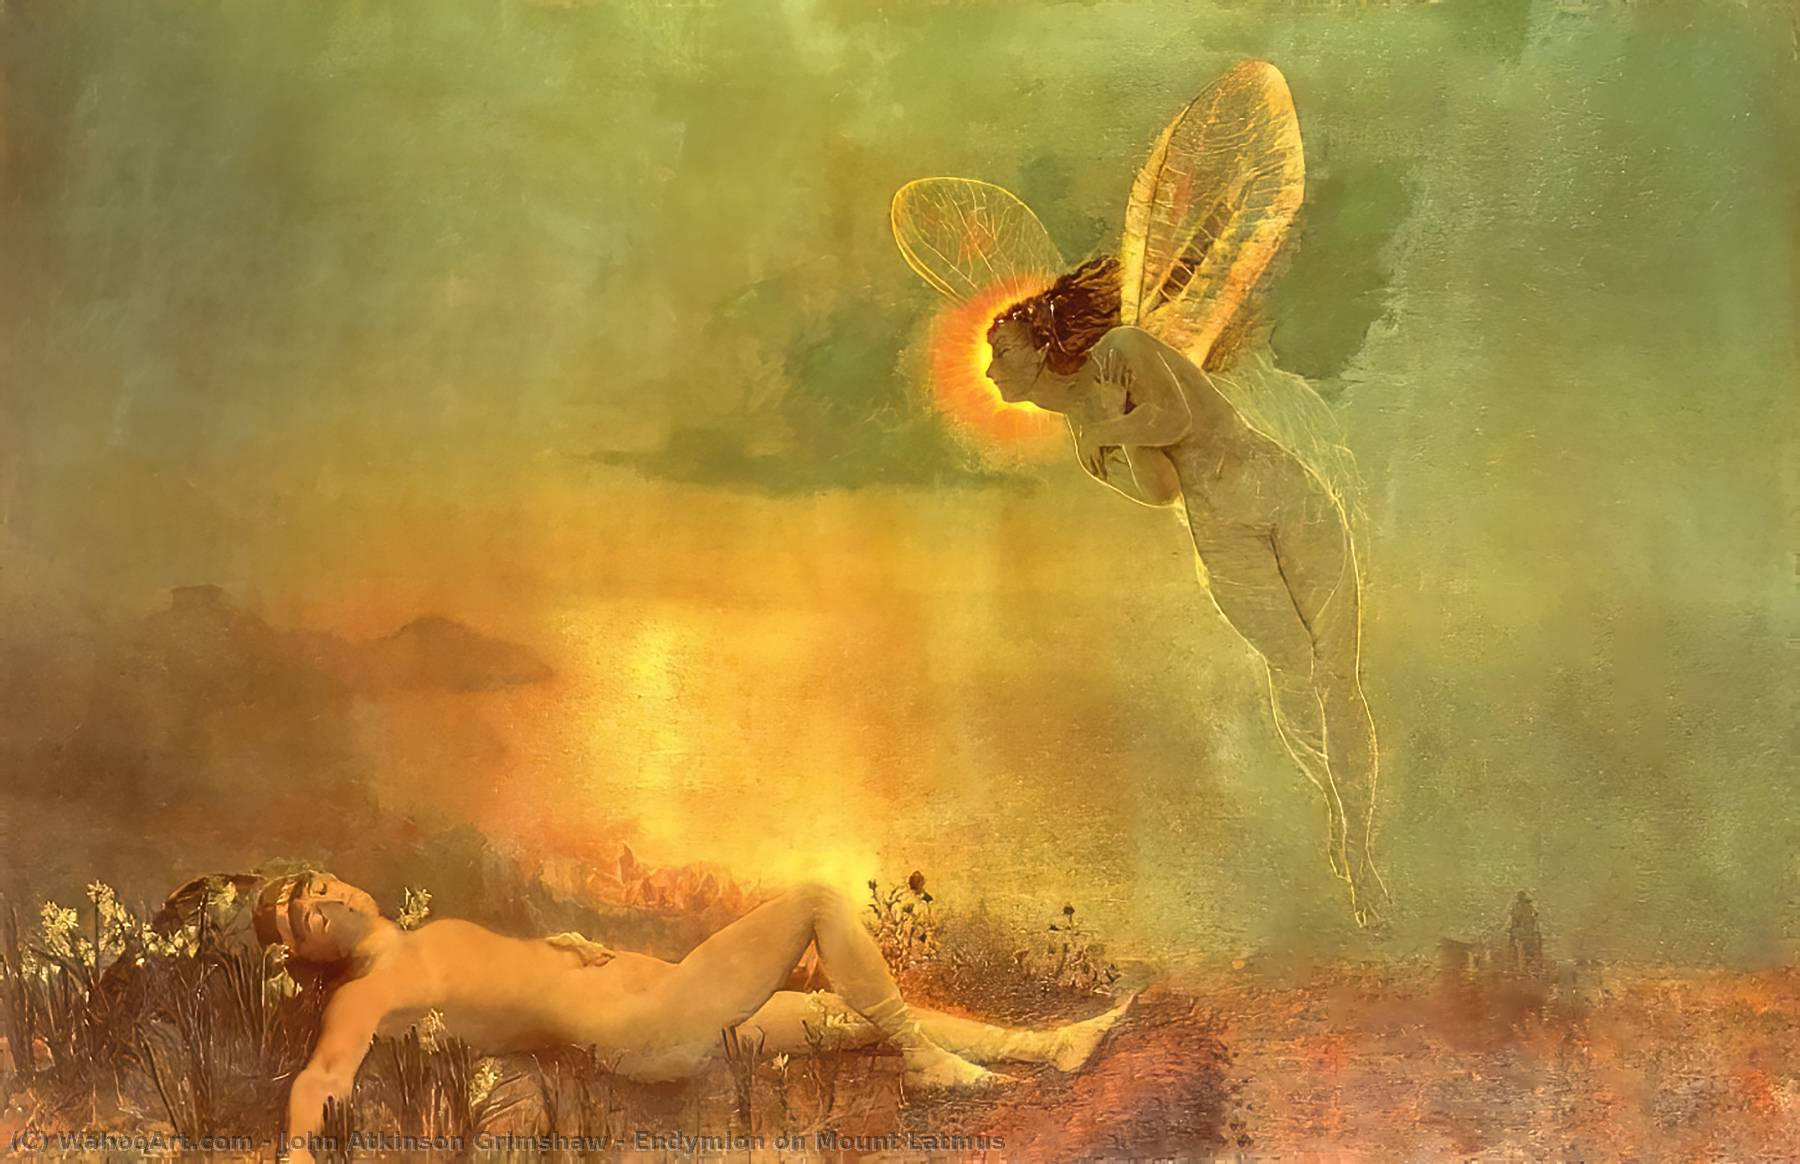 famous painting Endymion on Mount Latmus of John Atkinson Grimshaw